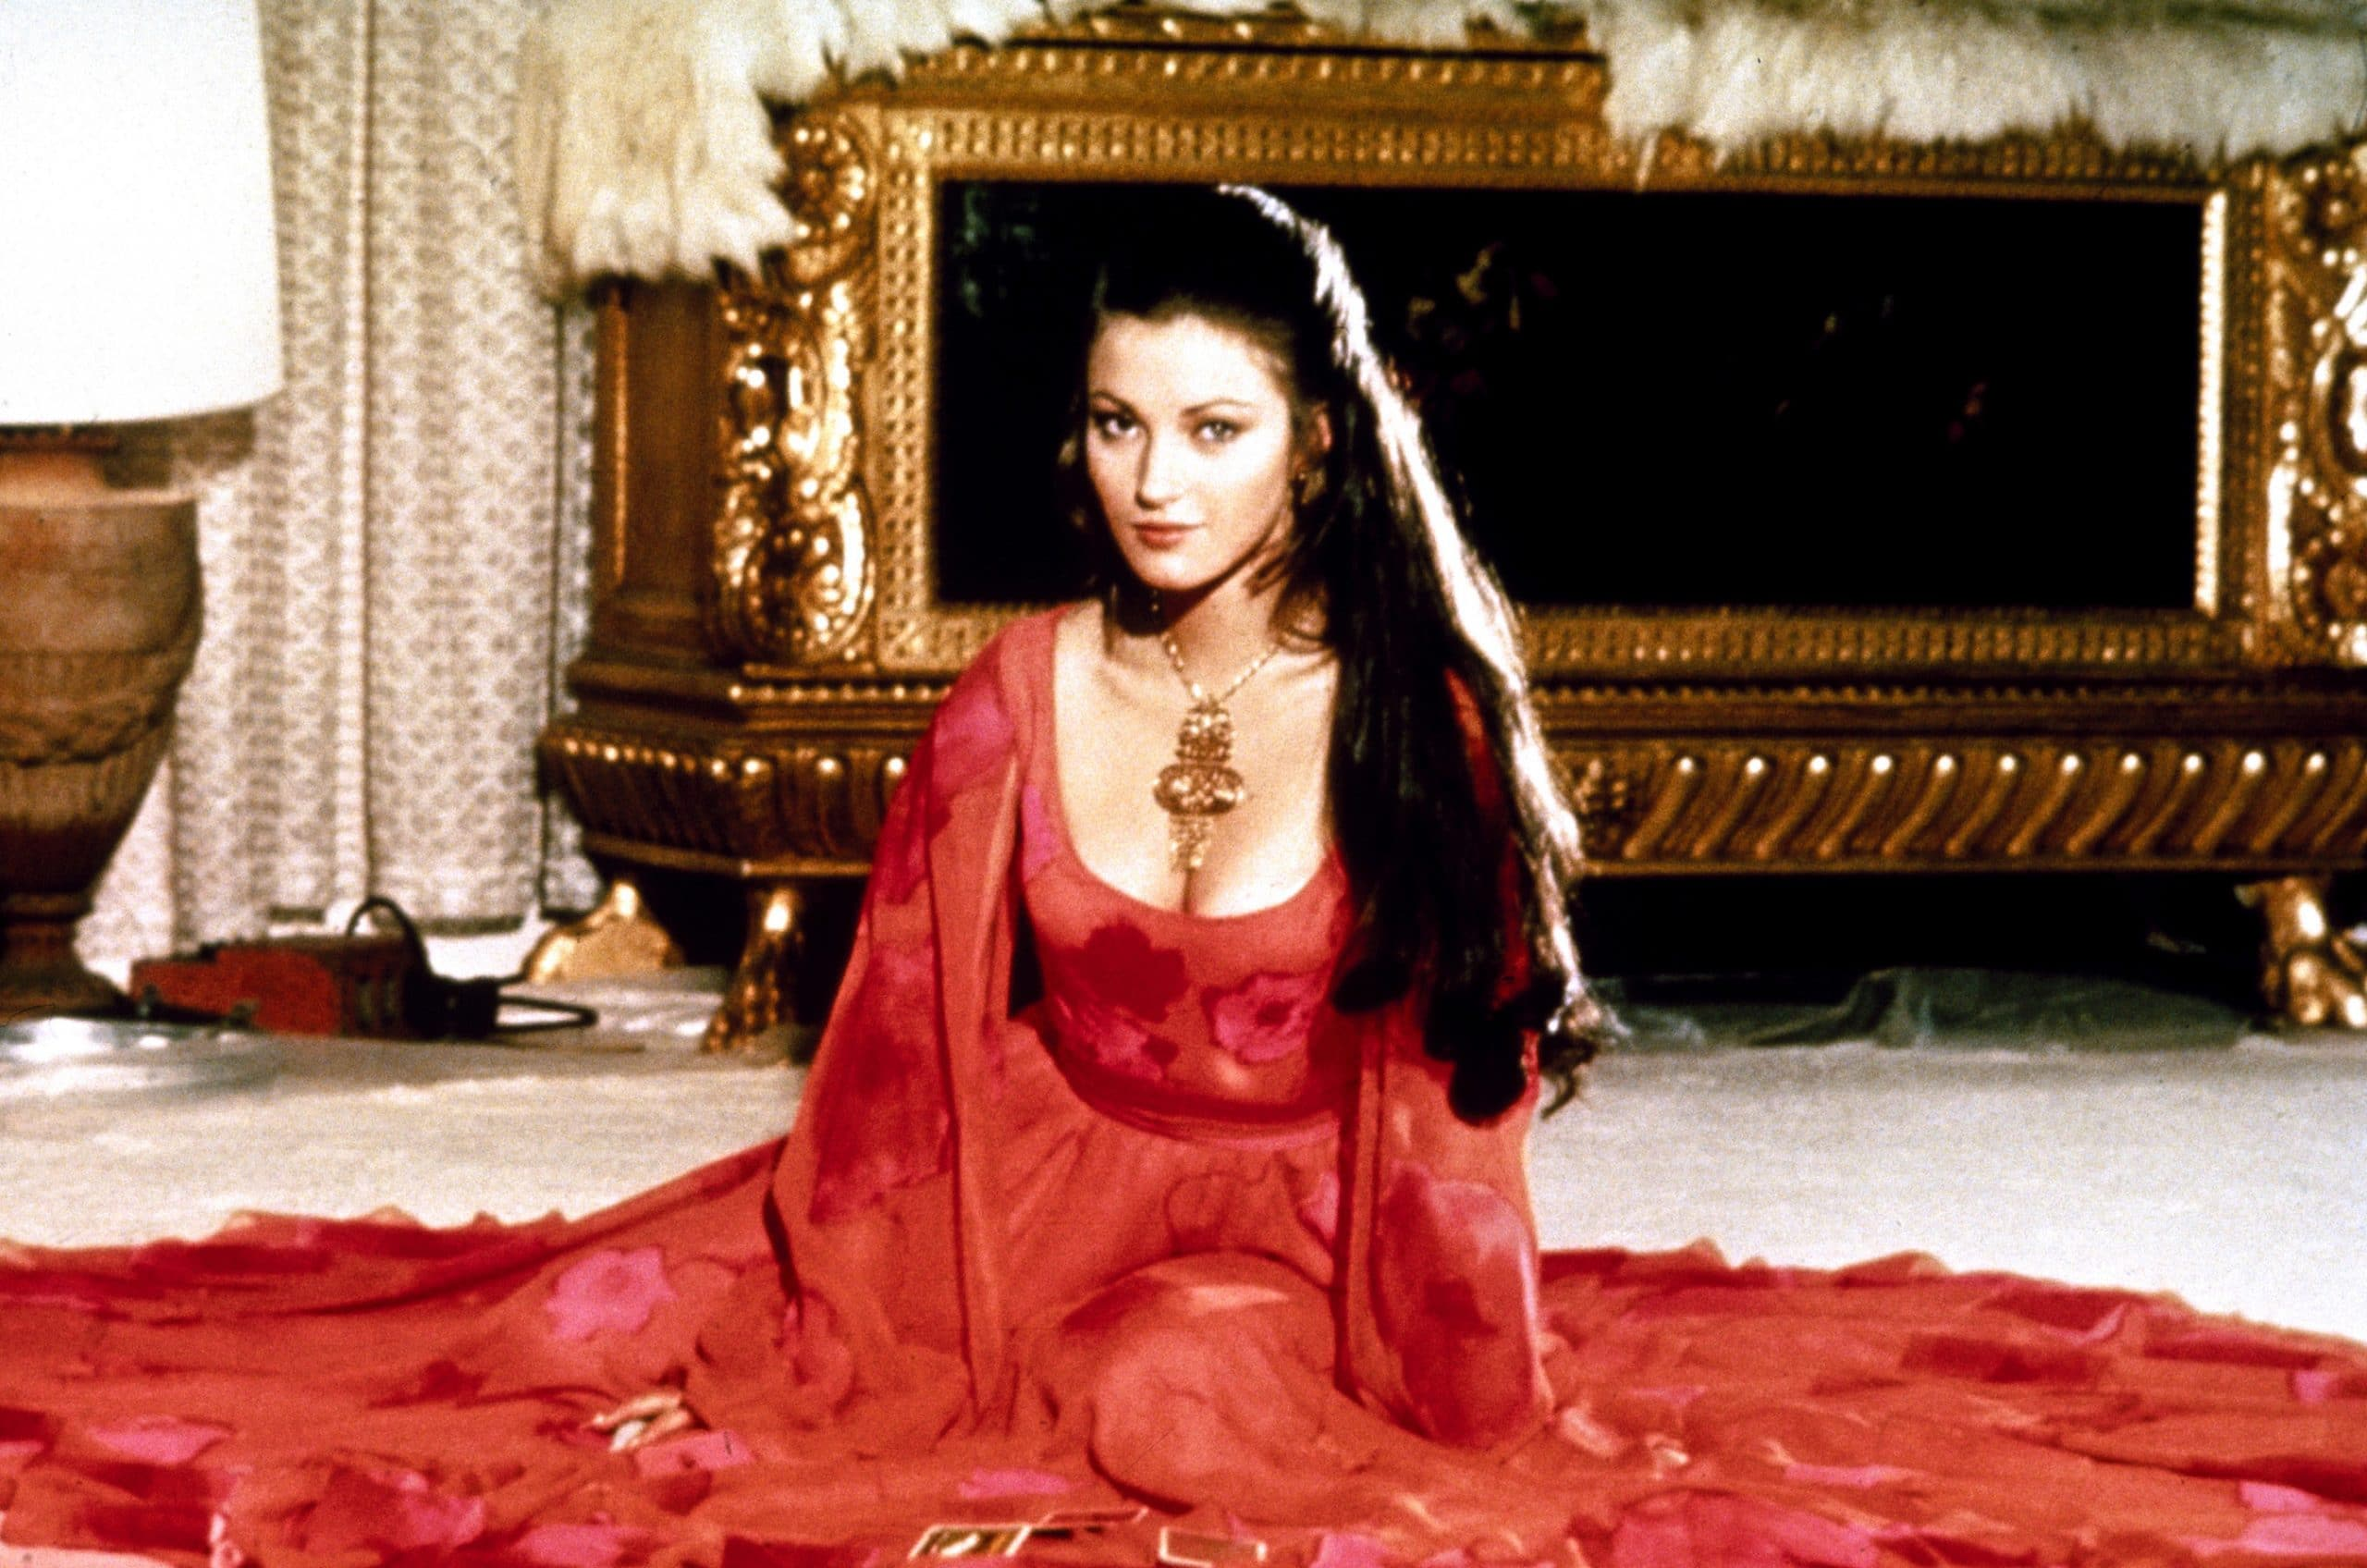 LIVE AND LET DIE, Jane Seymour, 1973